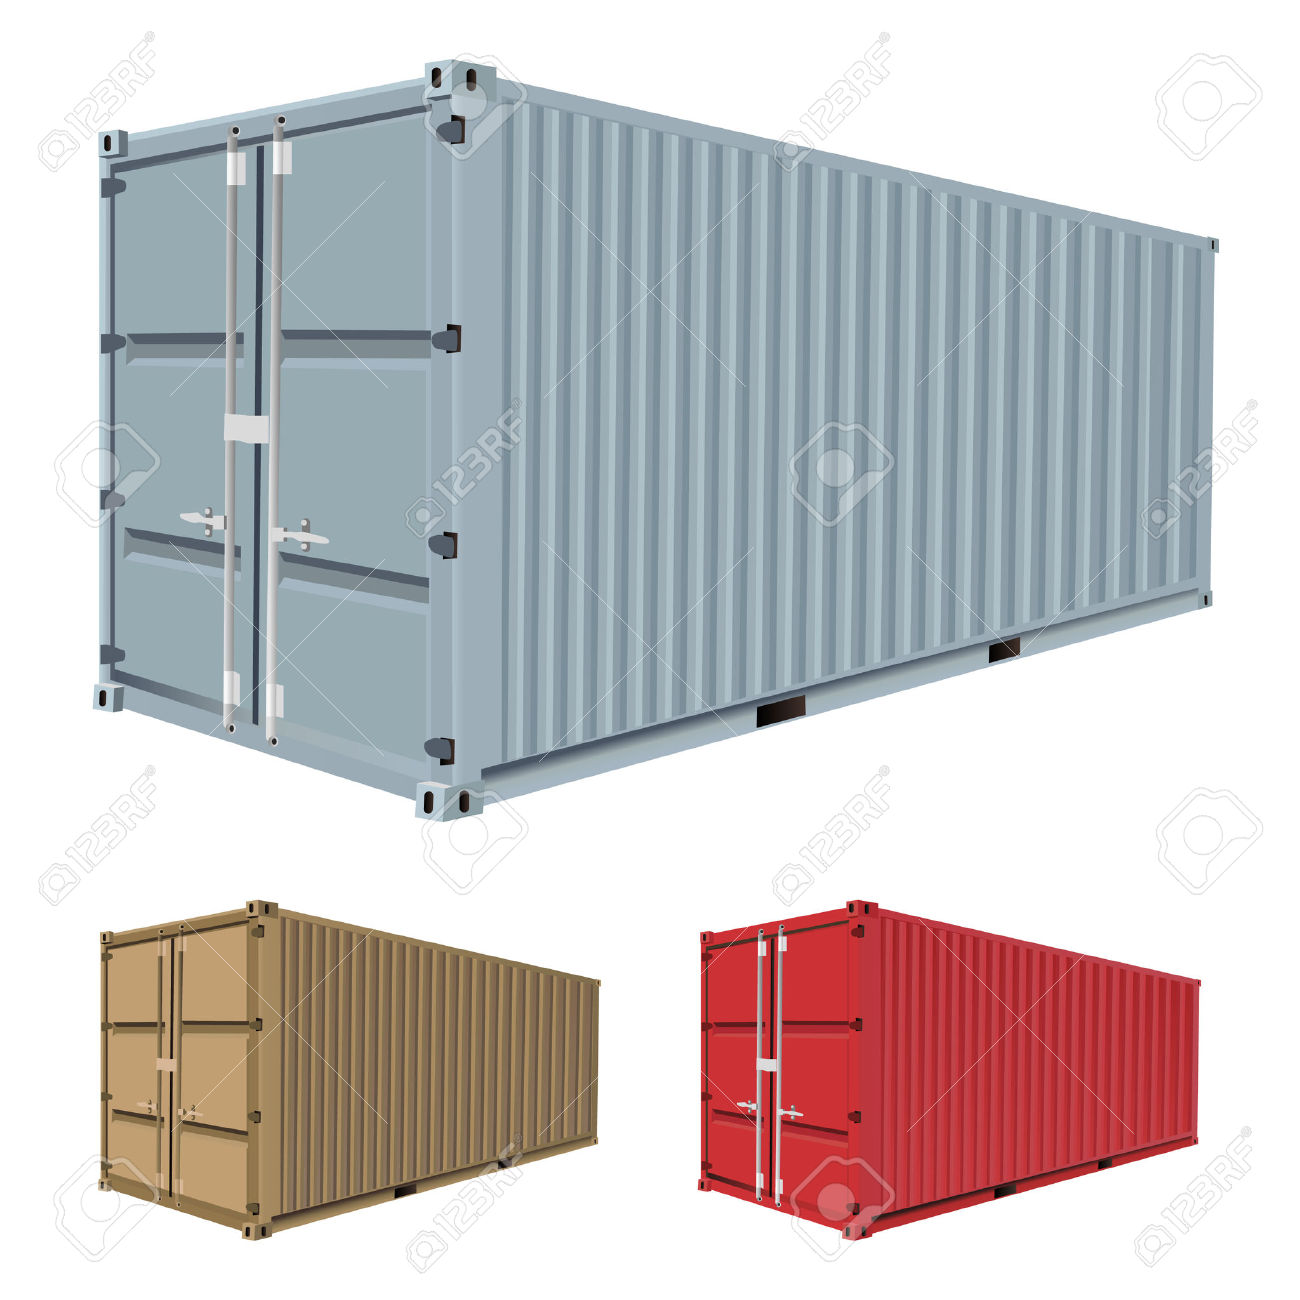 Container Clipart Page 1.